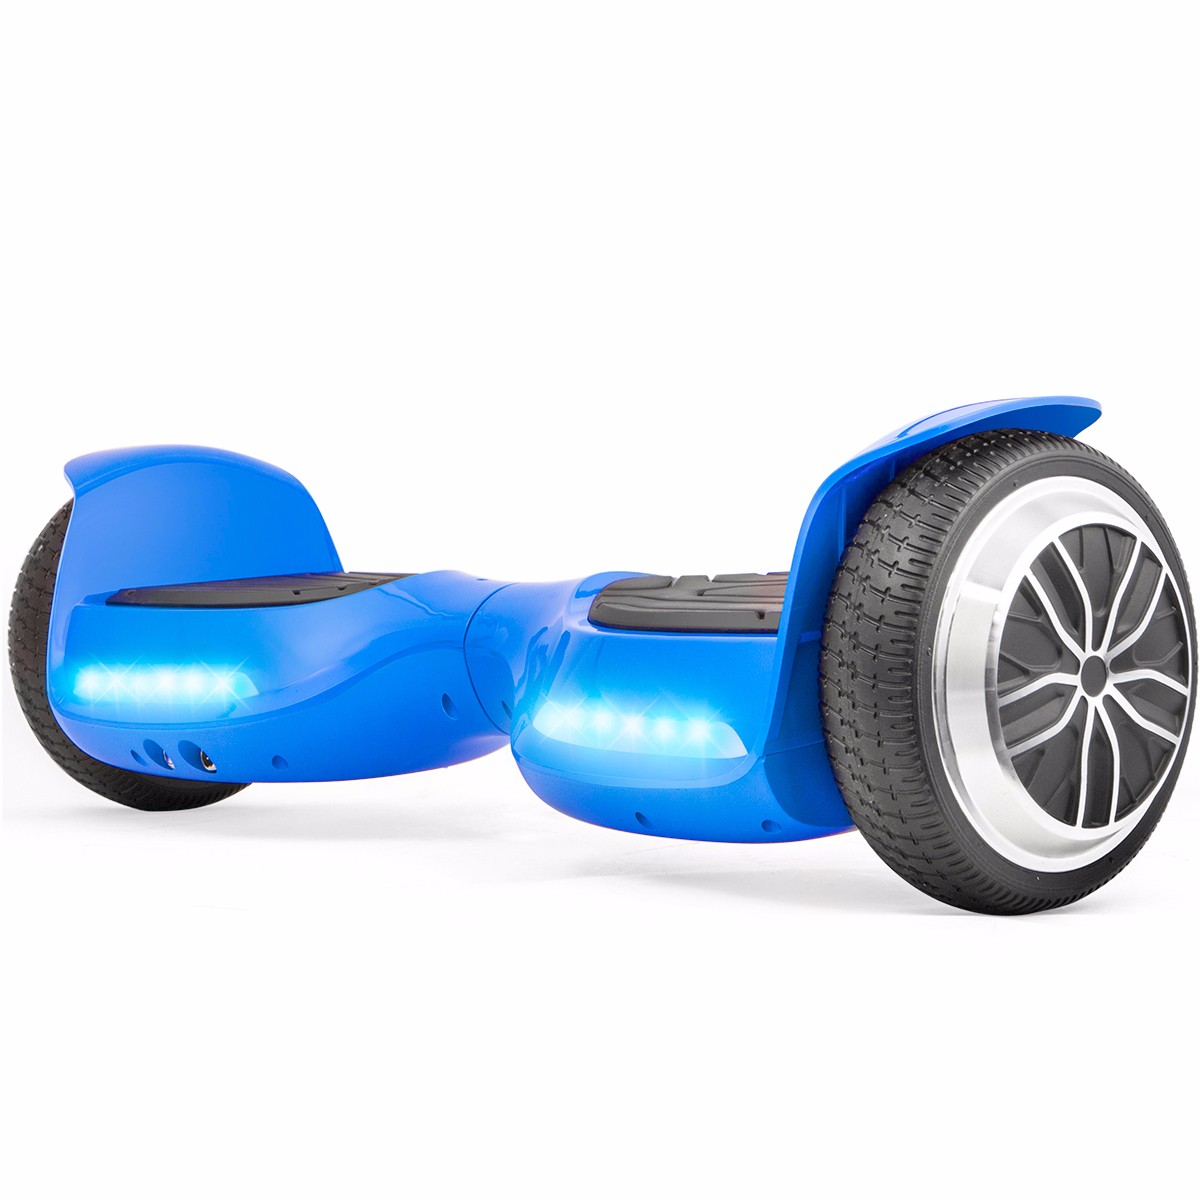 Self Balancing Electric Scooter Hoverboard UL CERTIFIED, Blue